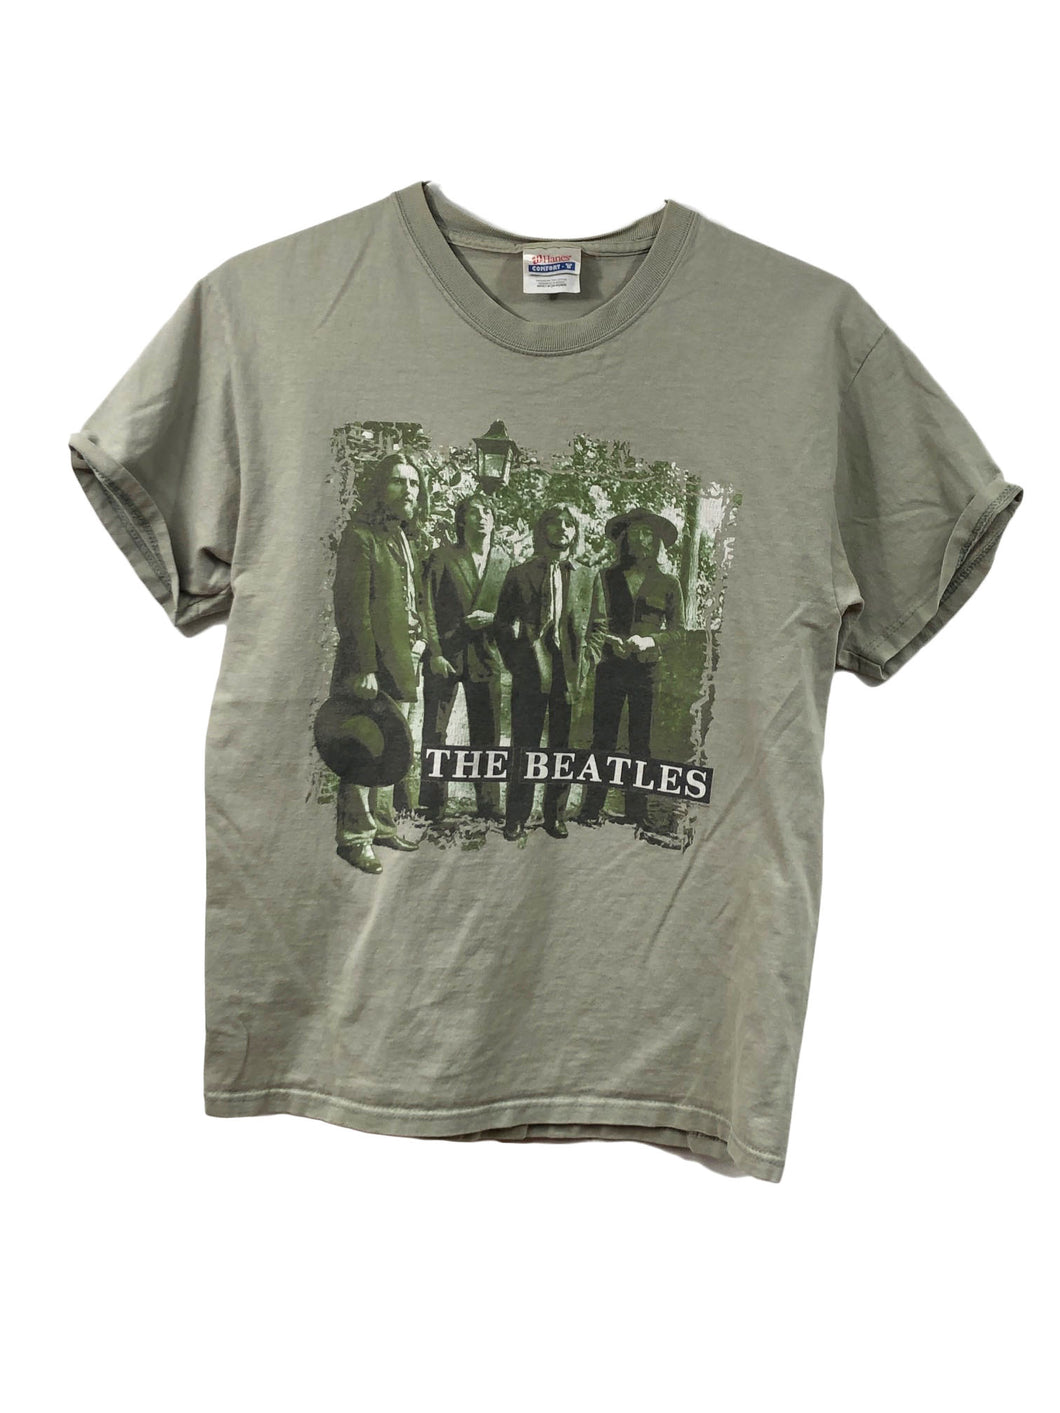 The Beatles Members Tee